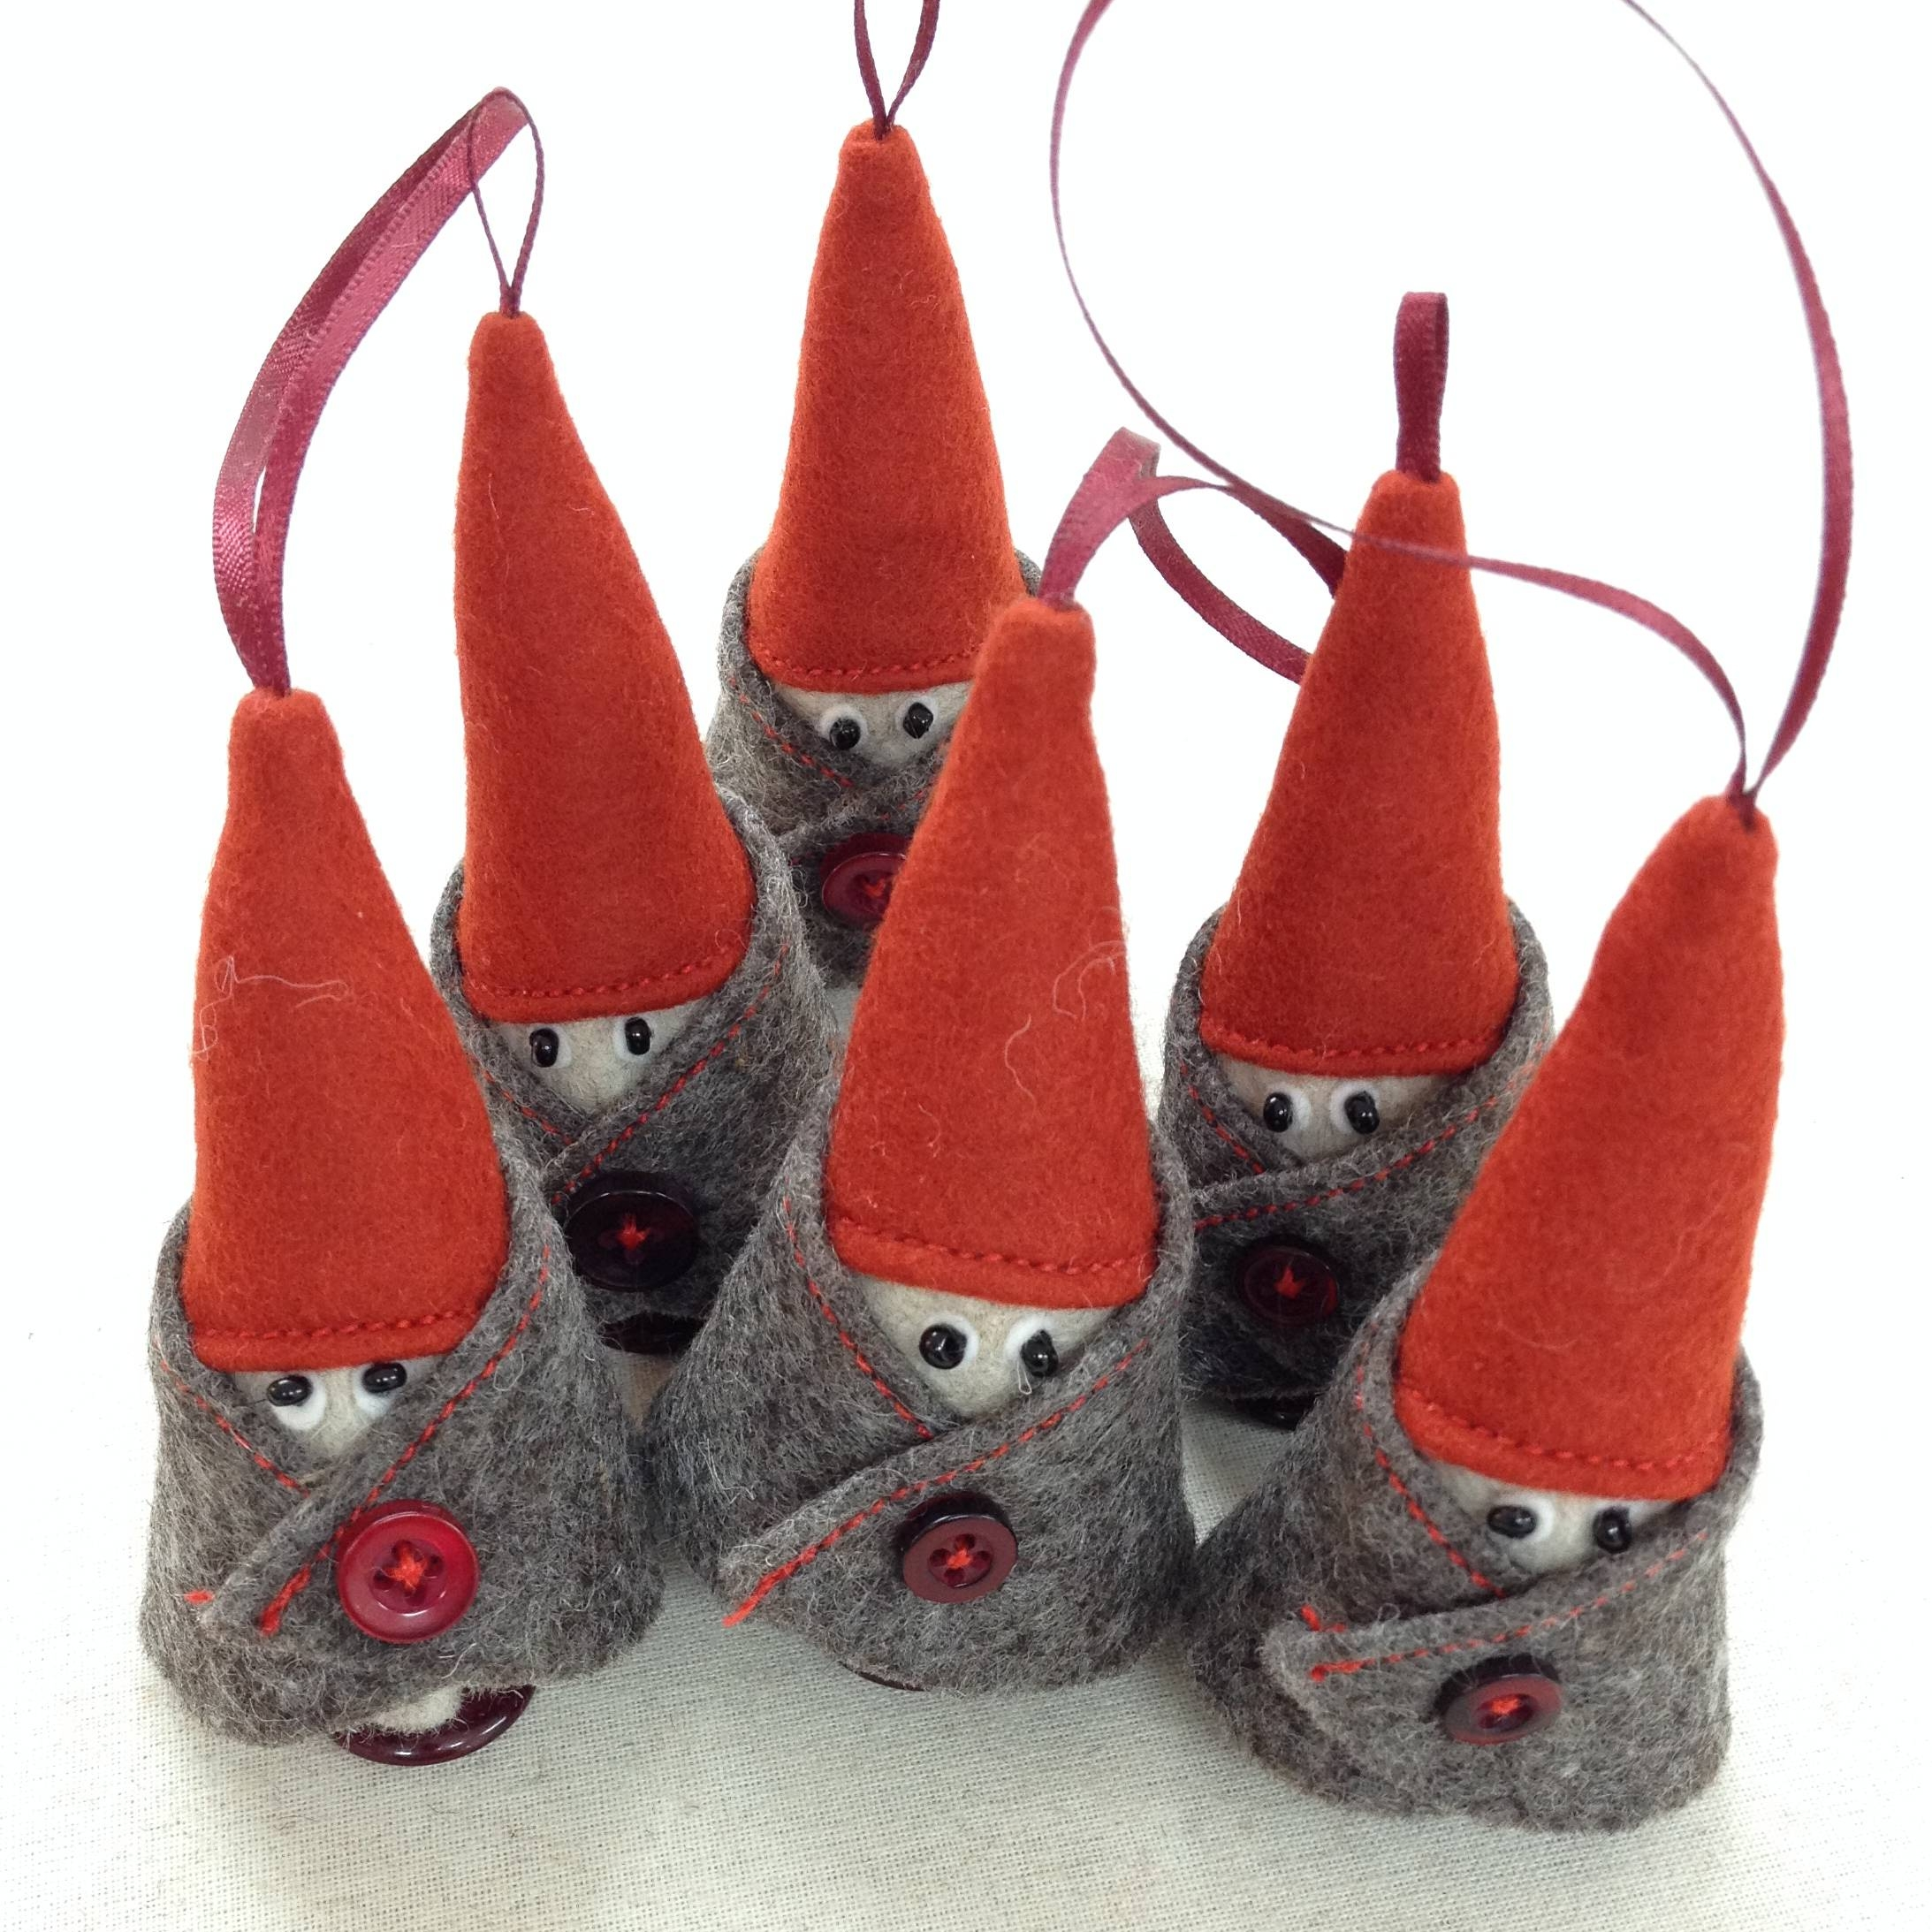 Group of handmade wool felt hanging dwarfs.